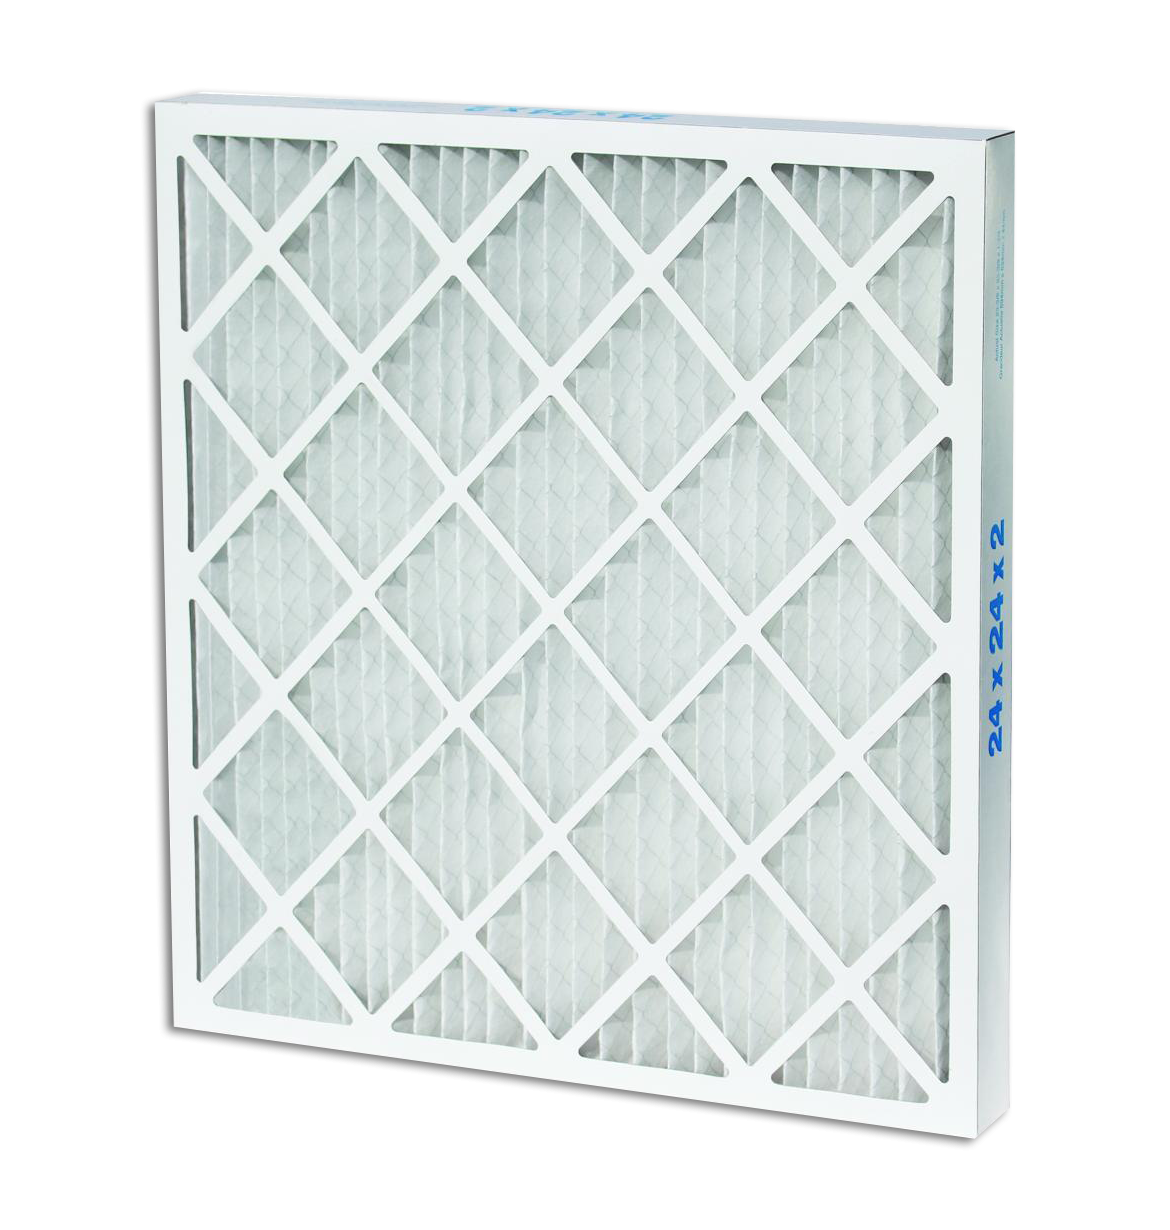 Series 400 Pleated Air Filter